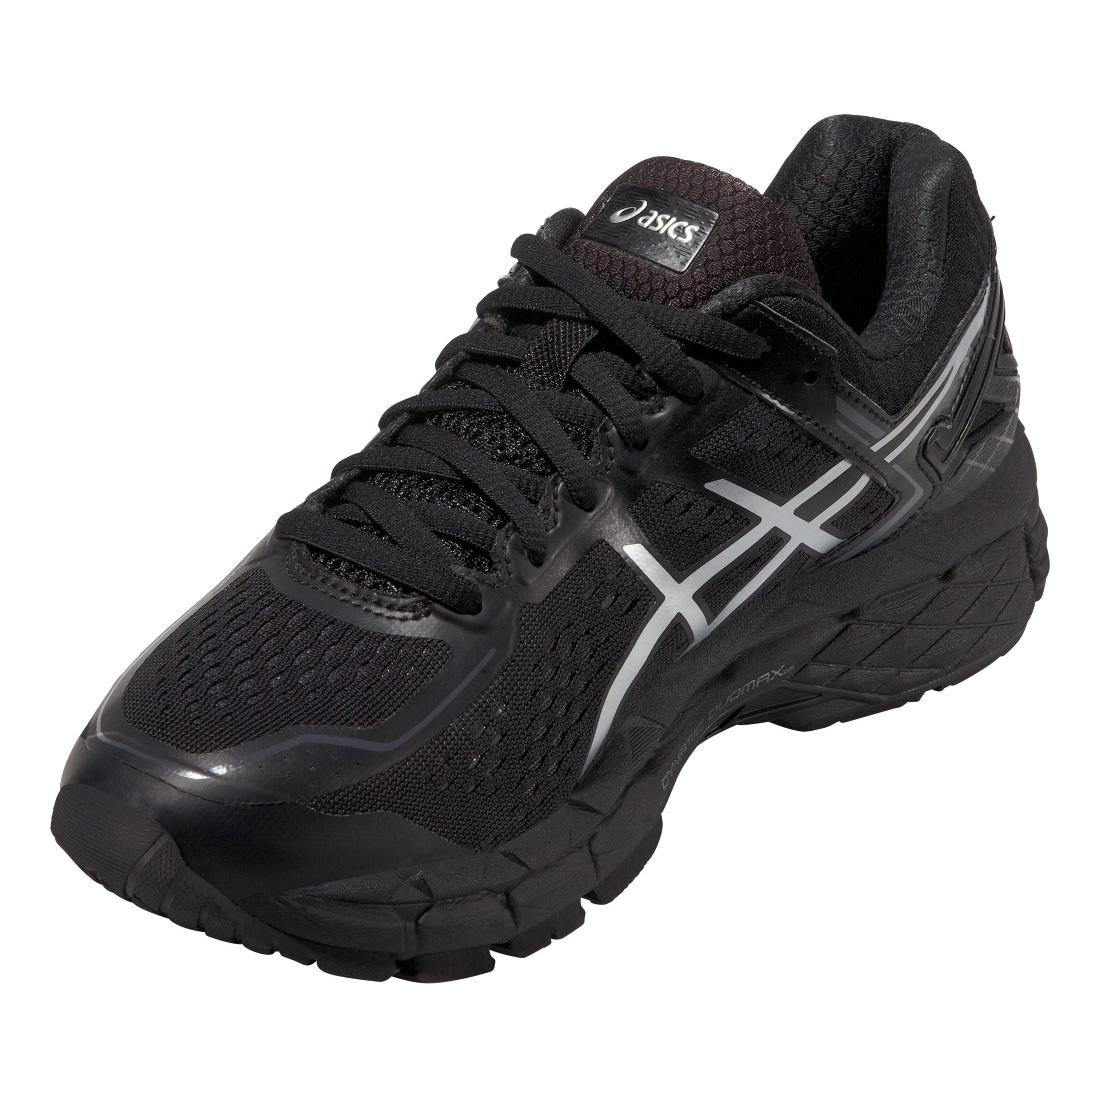 asics womens gel kayano 22 running shoes black. Black Bedroom Furniture Sets. Home Design Ideas